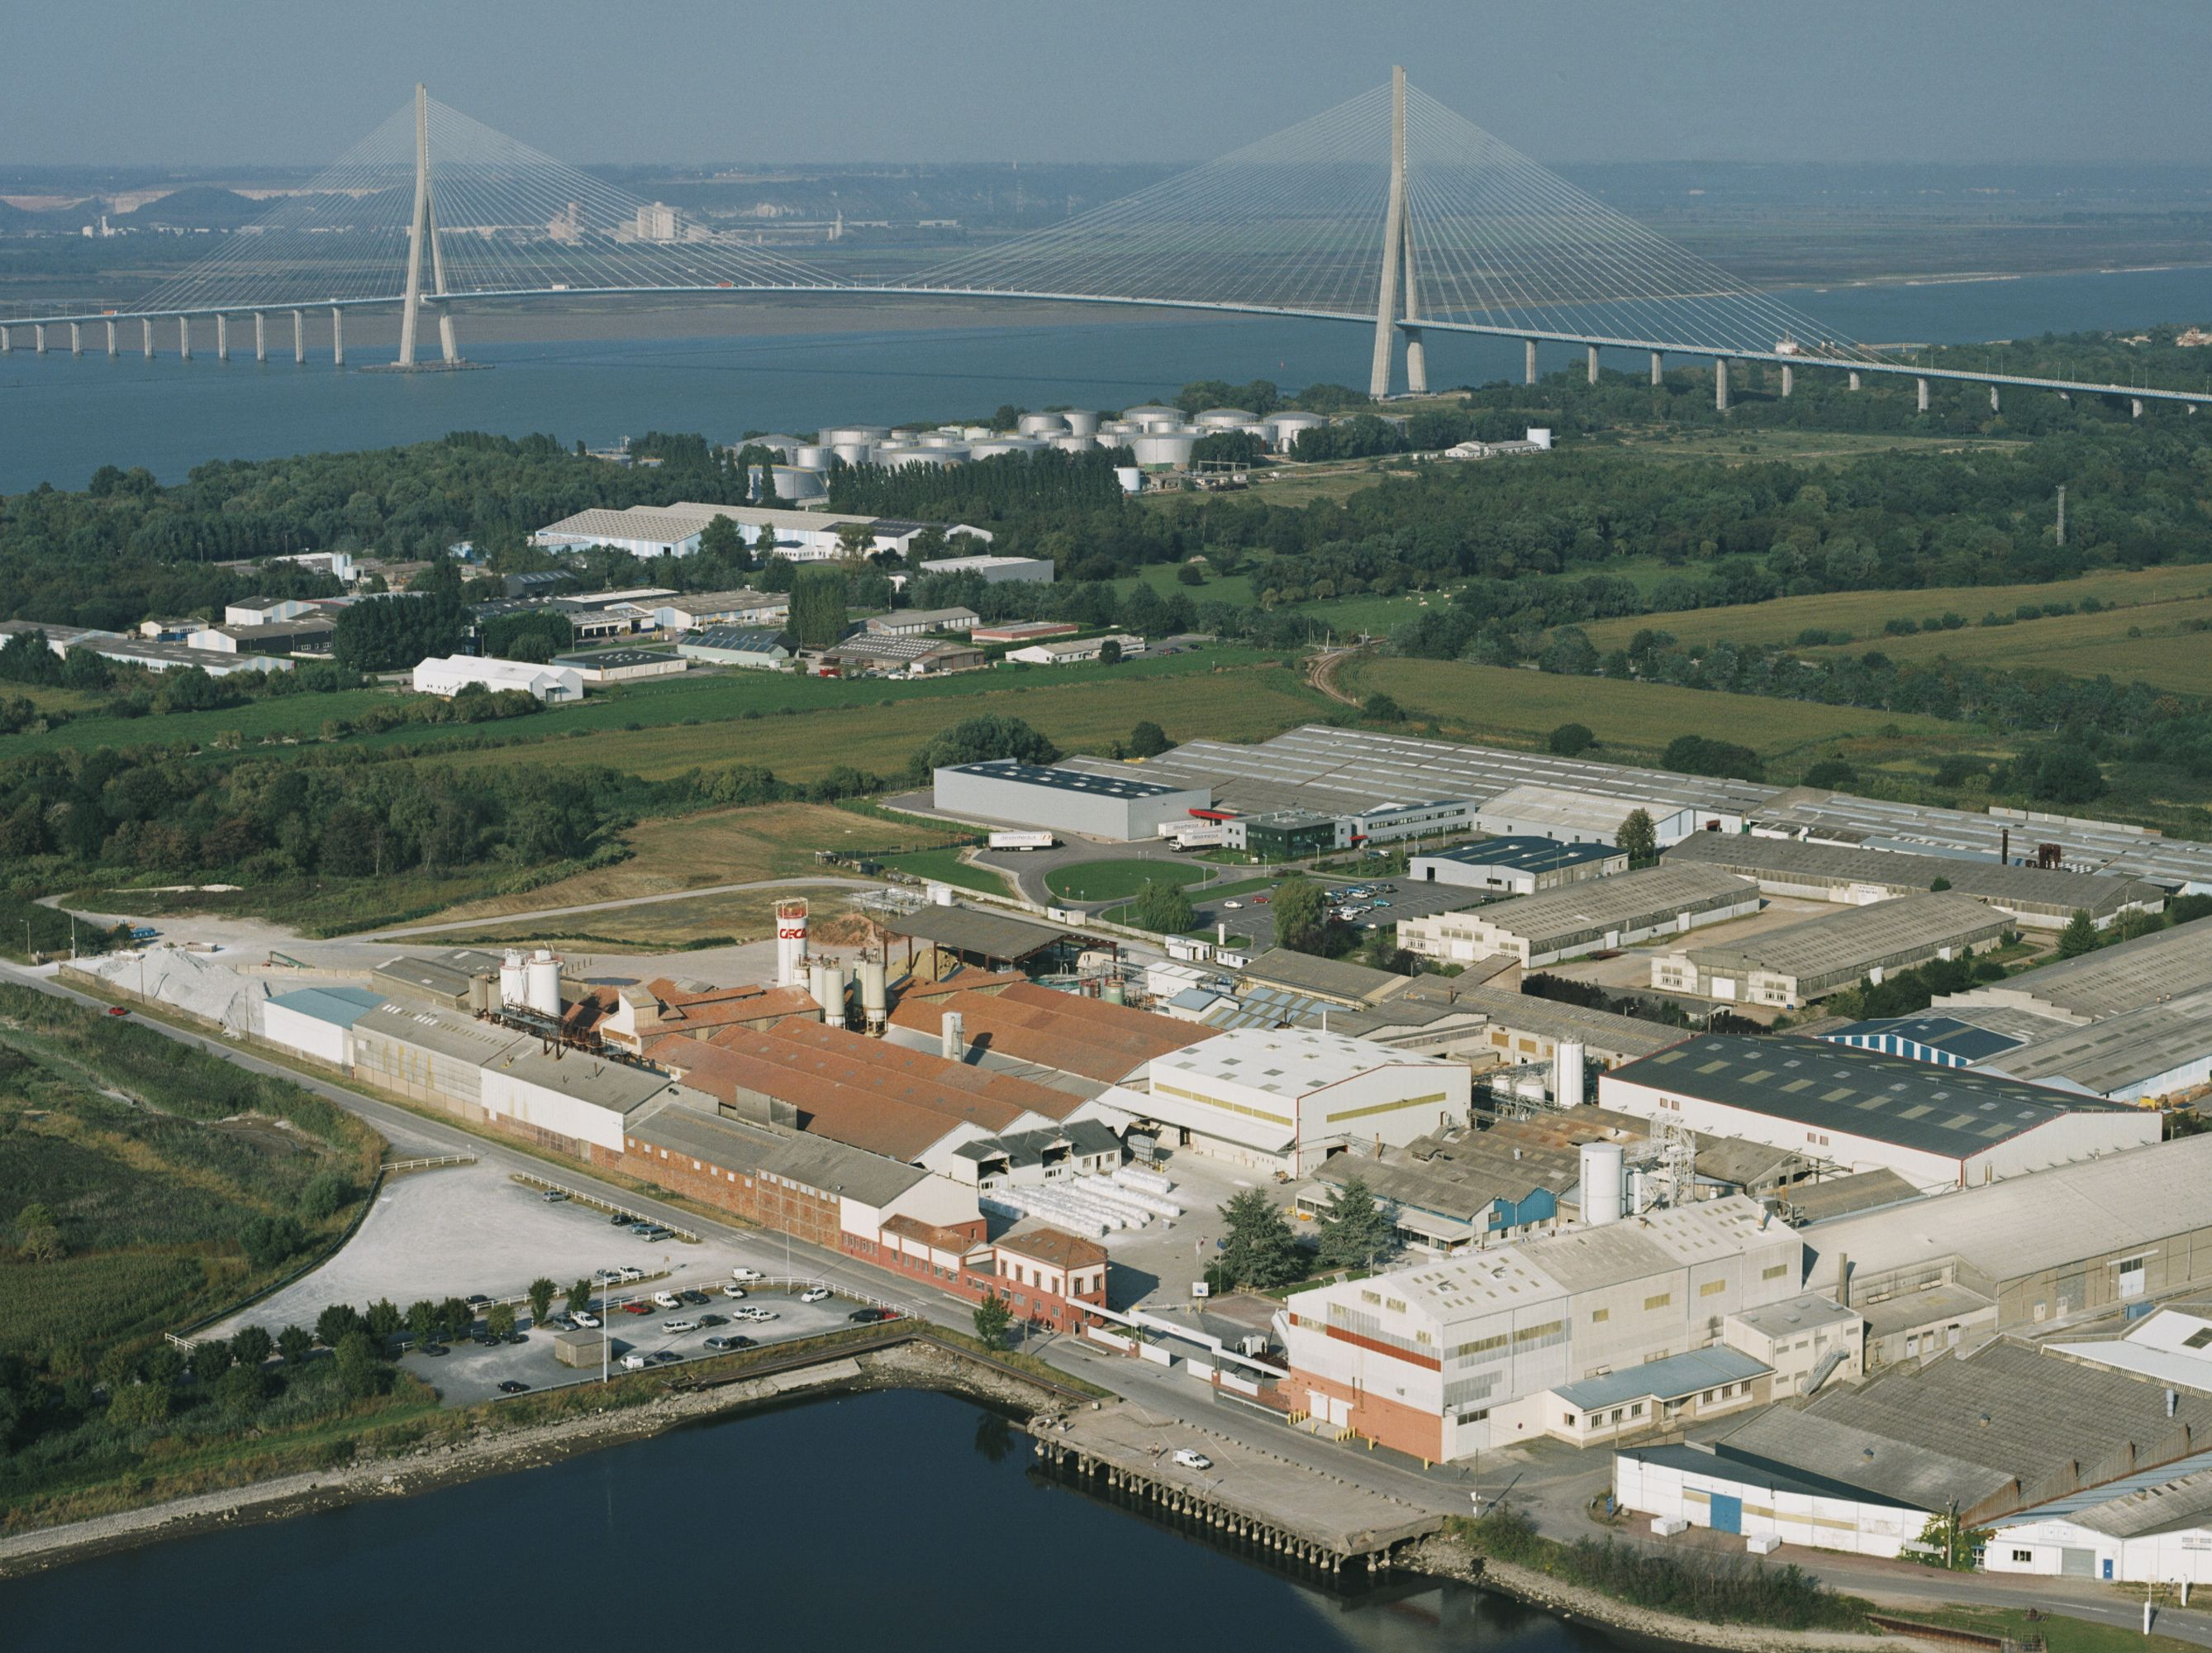 Bird's eye view of Honfleur CECA plant